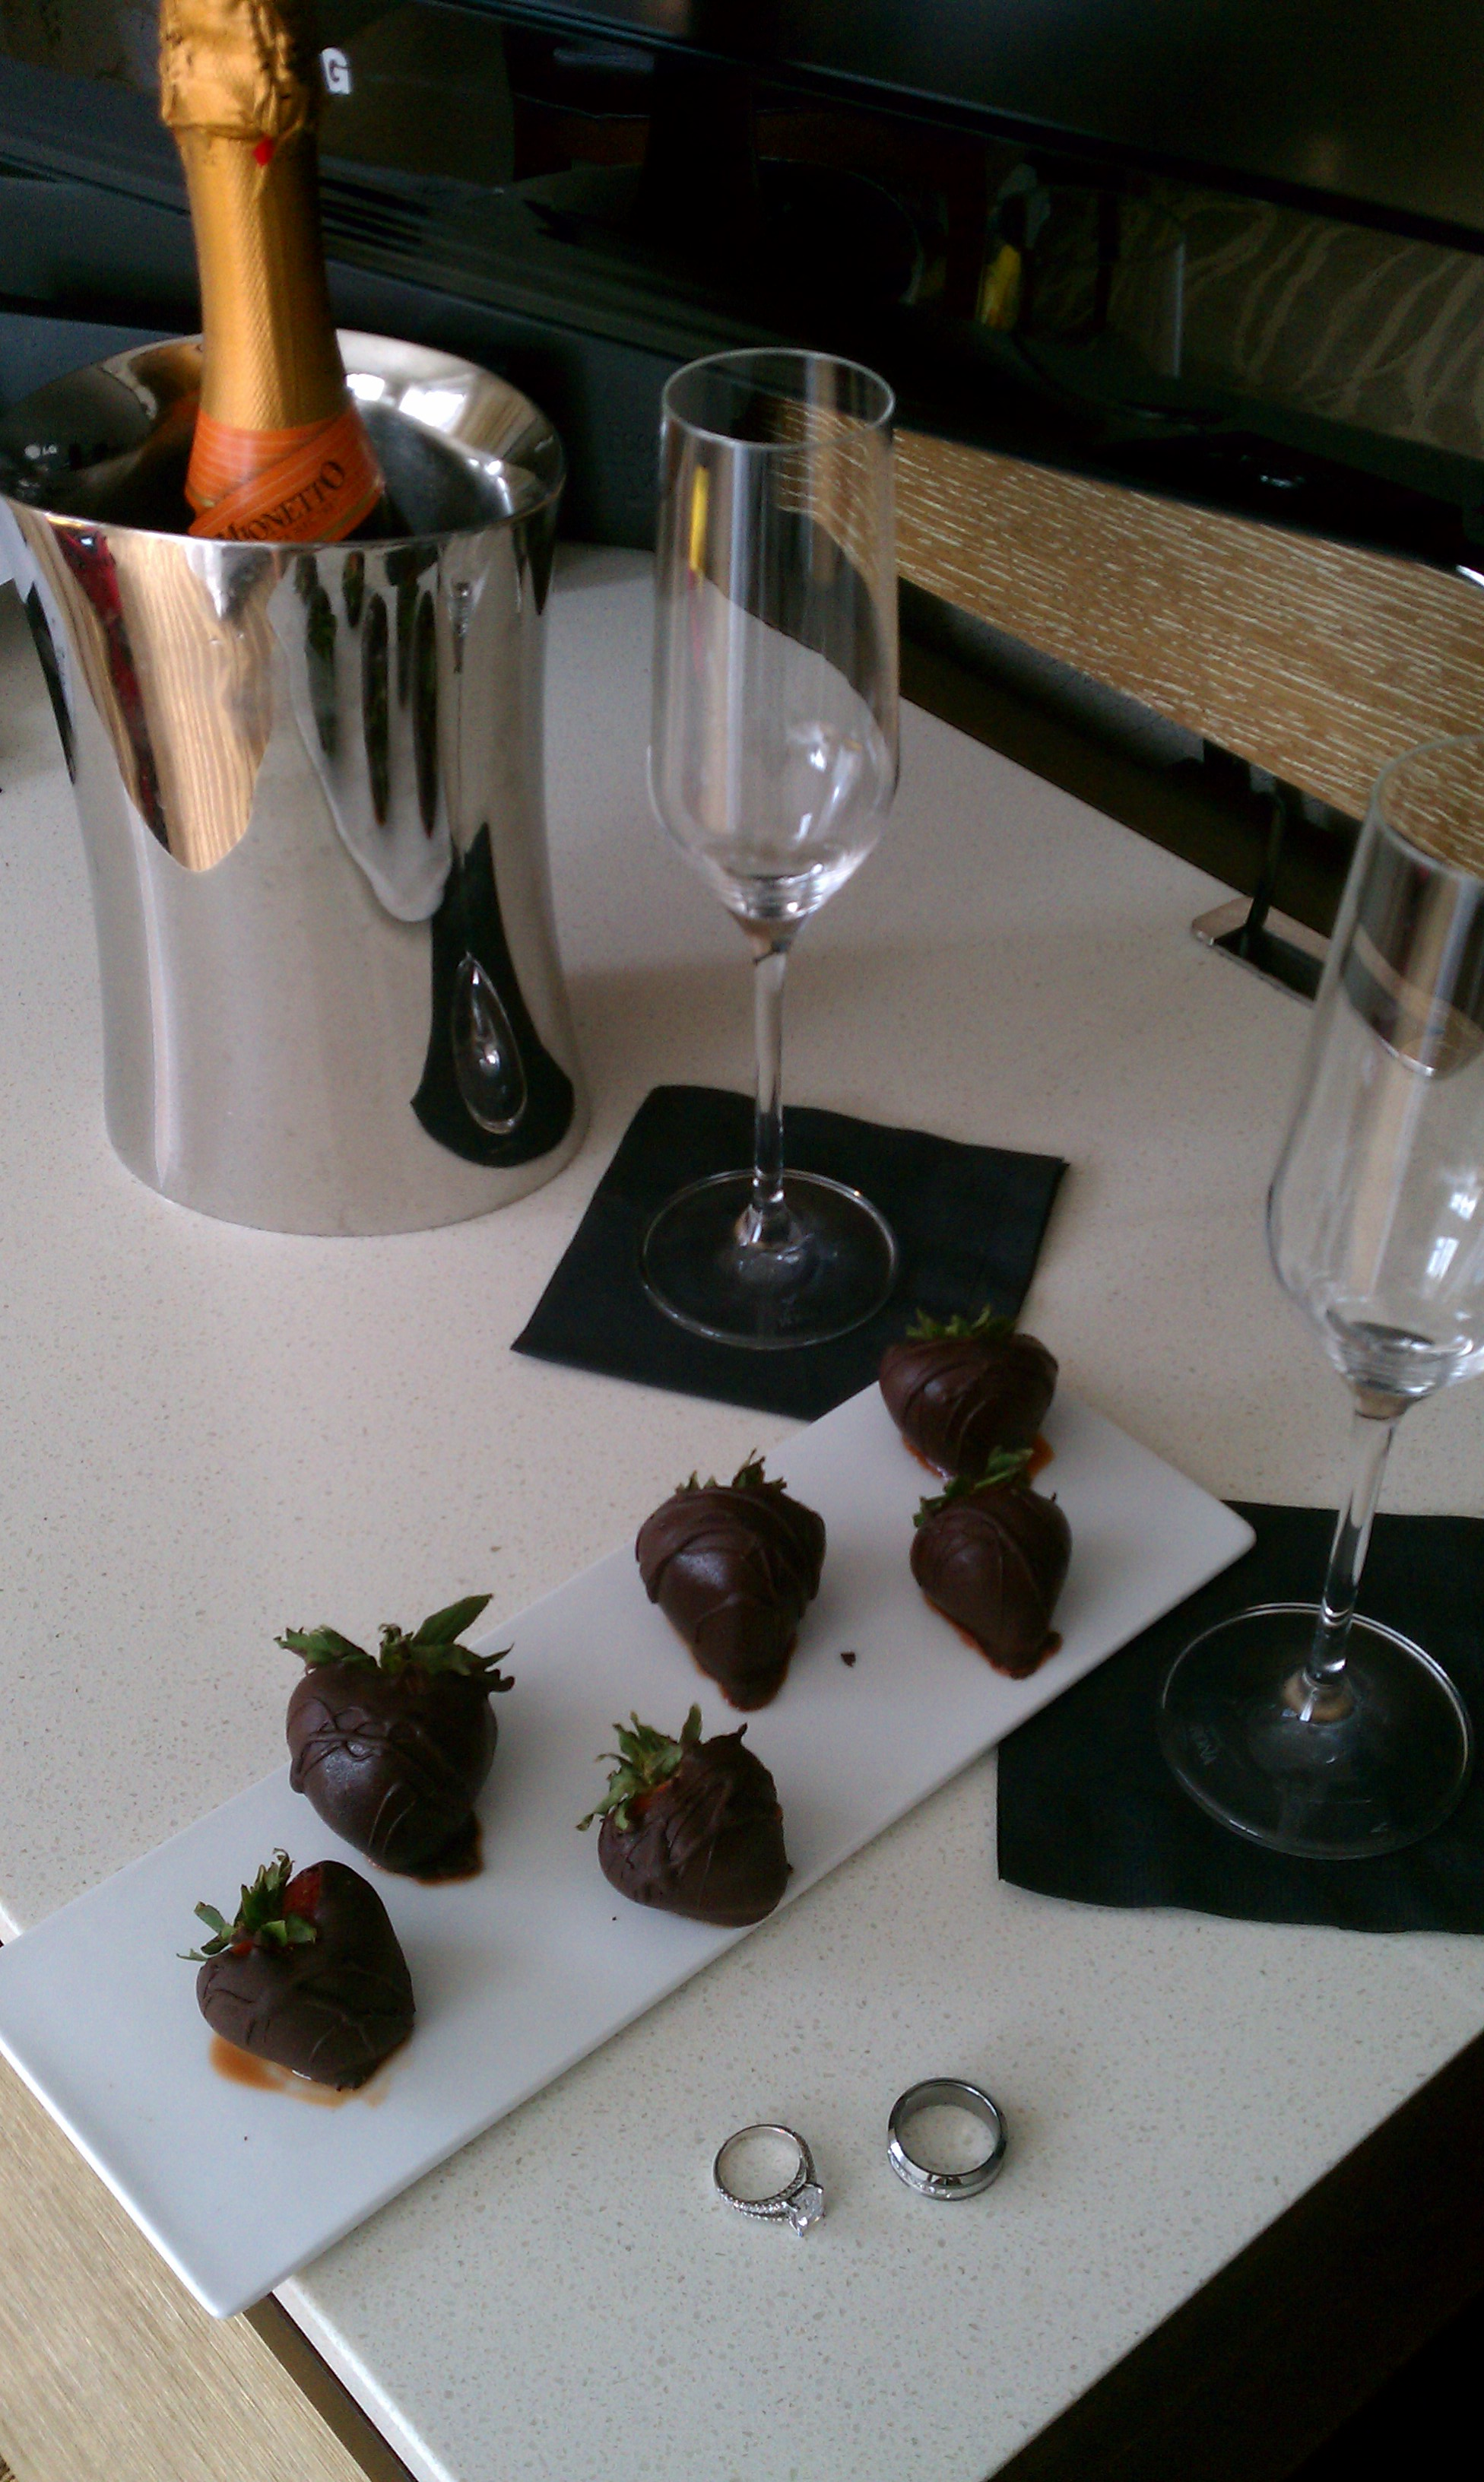 InterContinental New York caught wind from their Boston location, that we had just gotten married, and they had chocolate-covered strawberries and champagne in our room for us when we arrived! So thoughtful! (We don't really drink, but it's the thought that counts!)